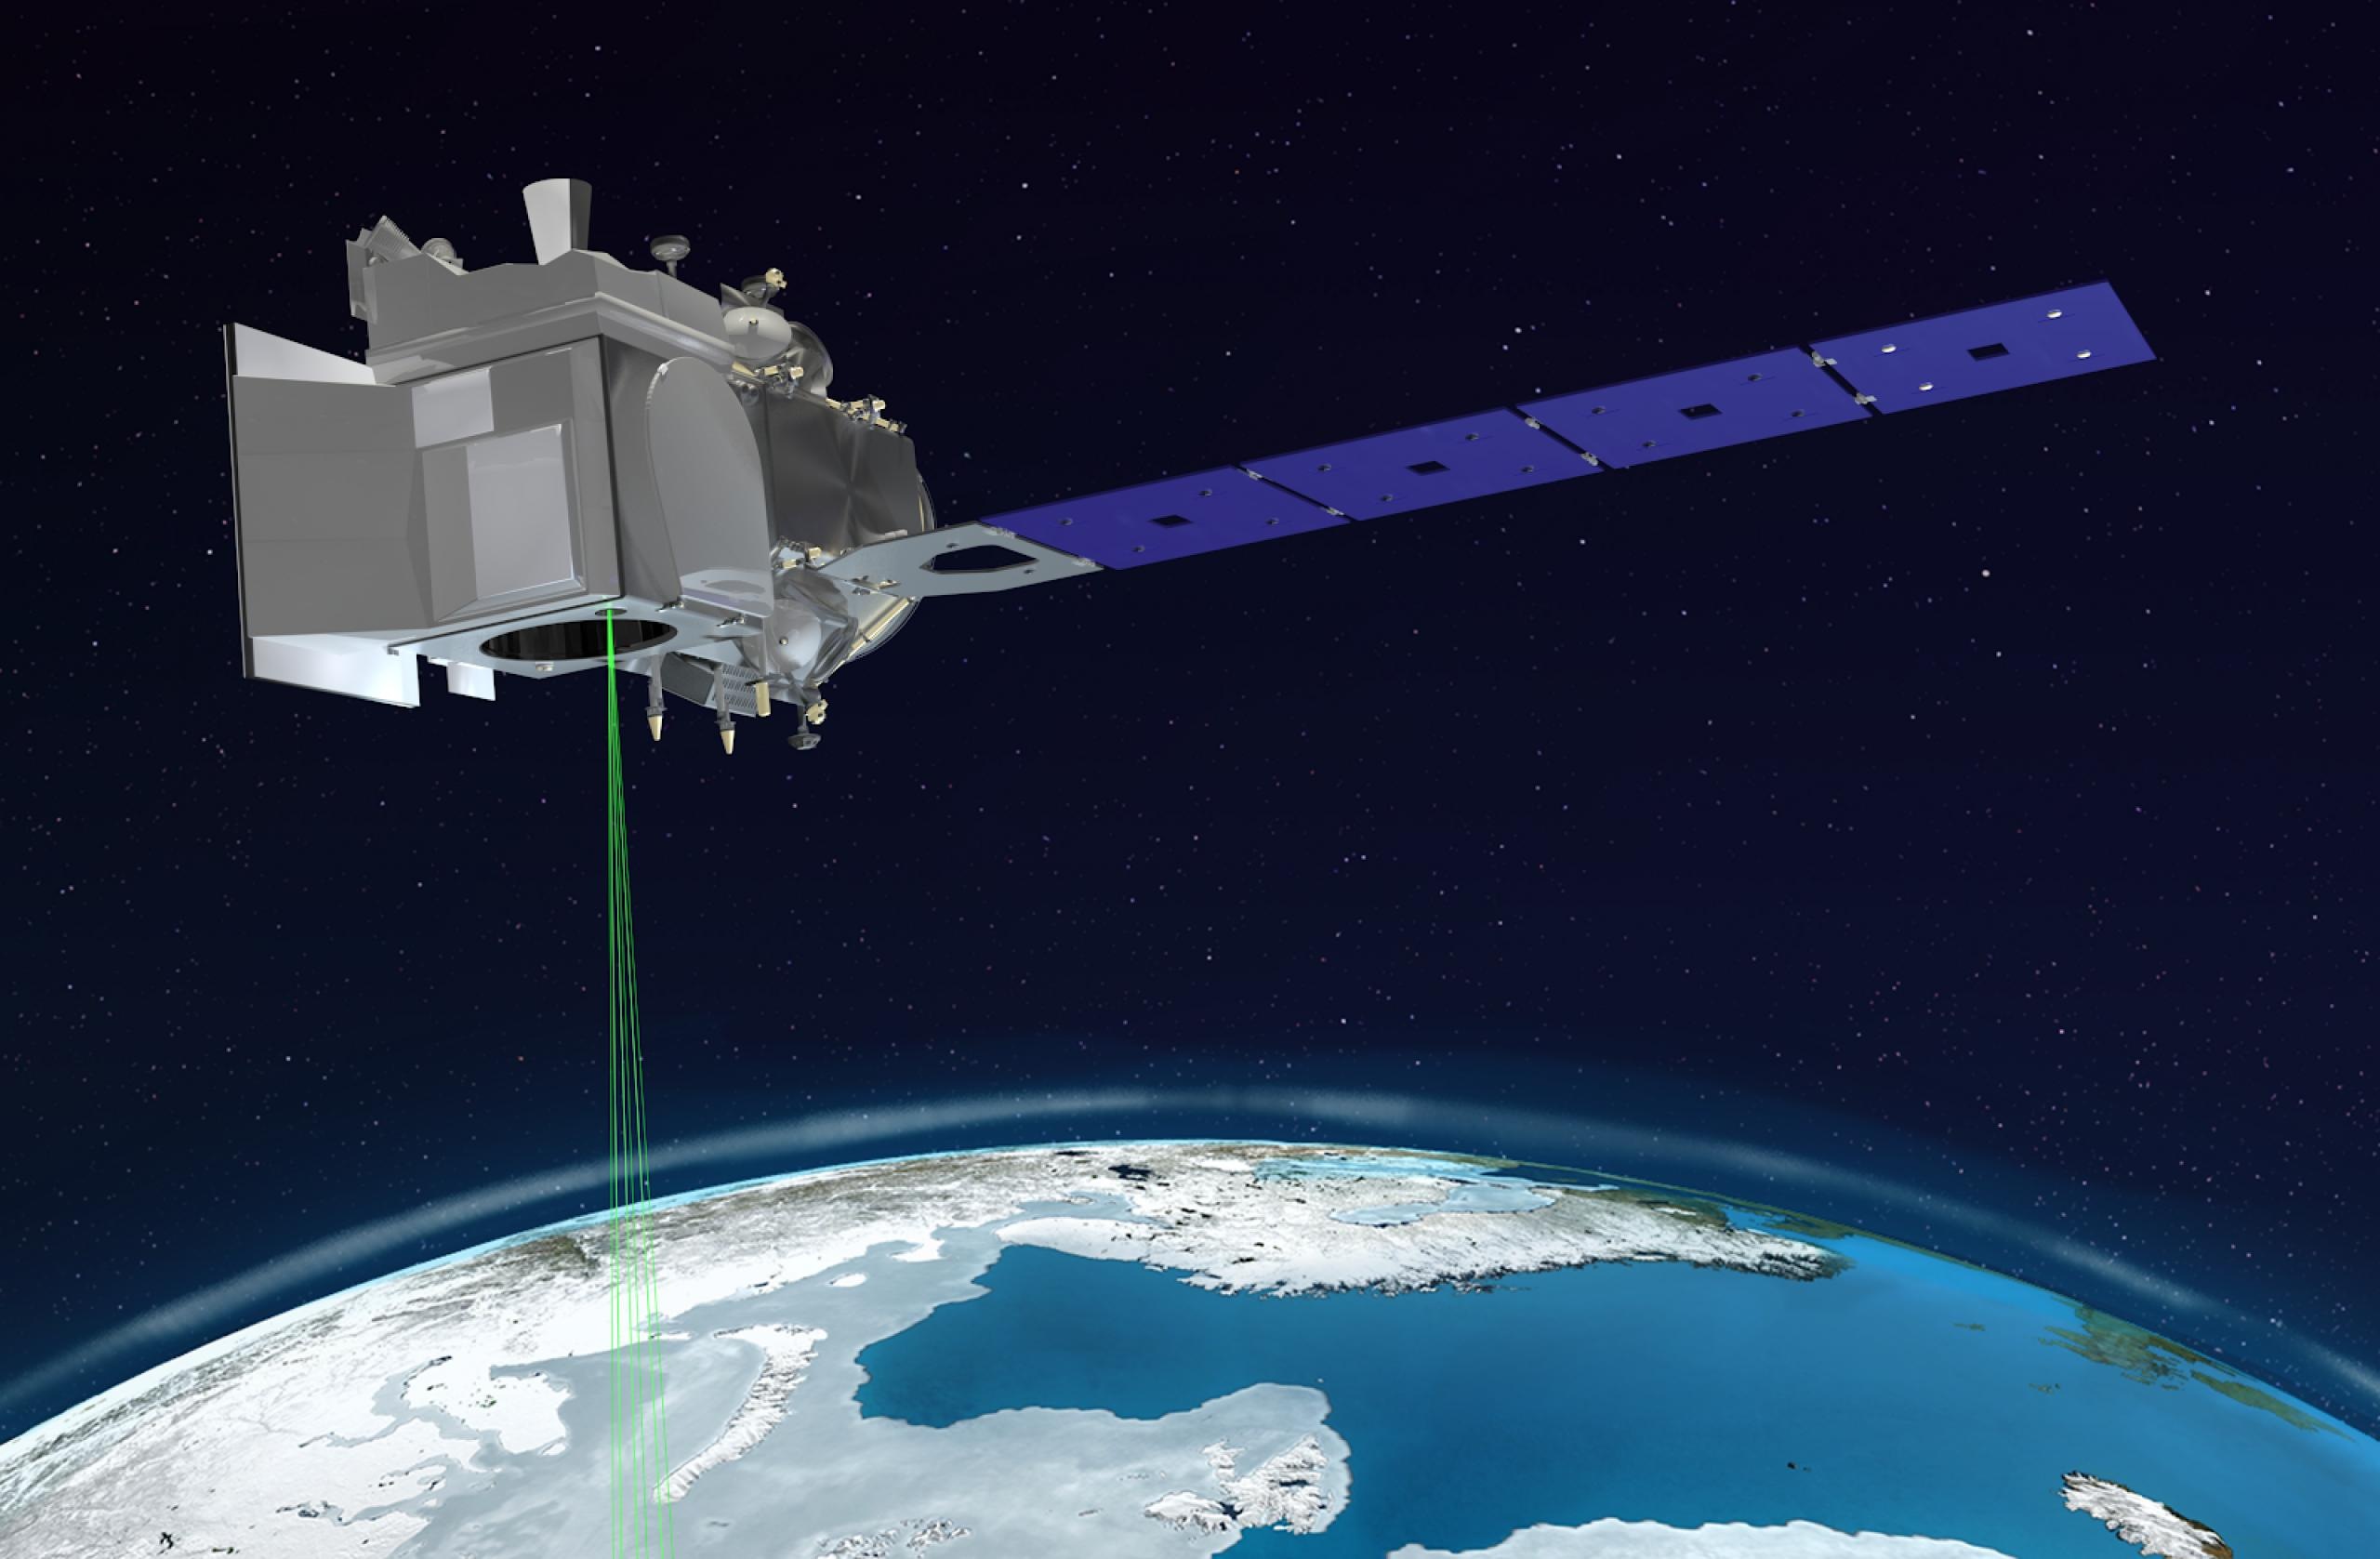 Artist concept of space instrument orbiting in the earth's atmosphere and scanning the earth's surface